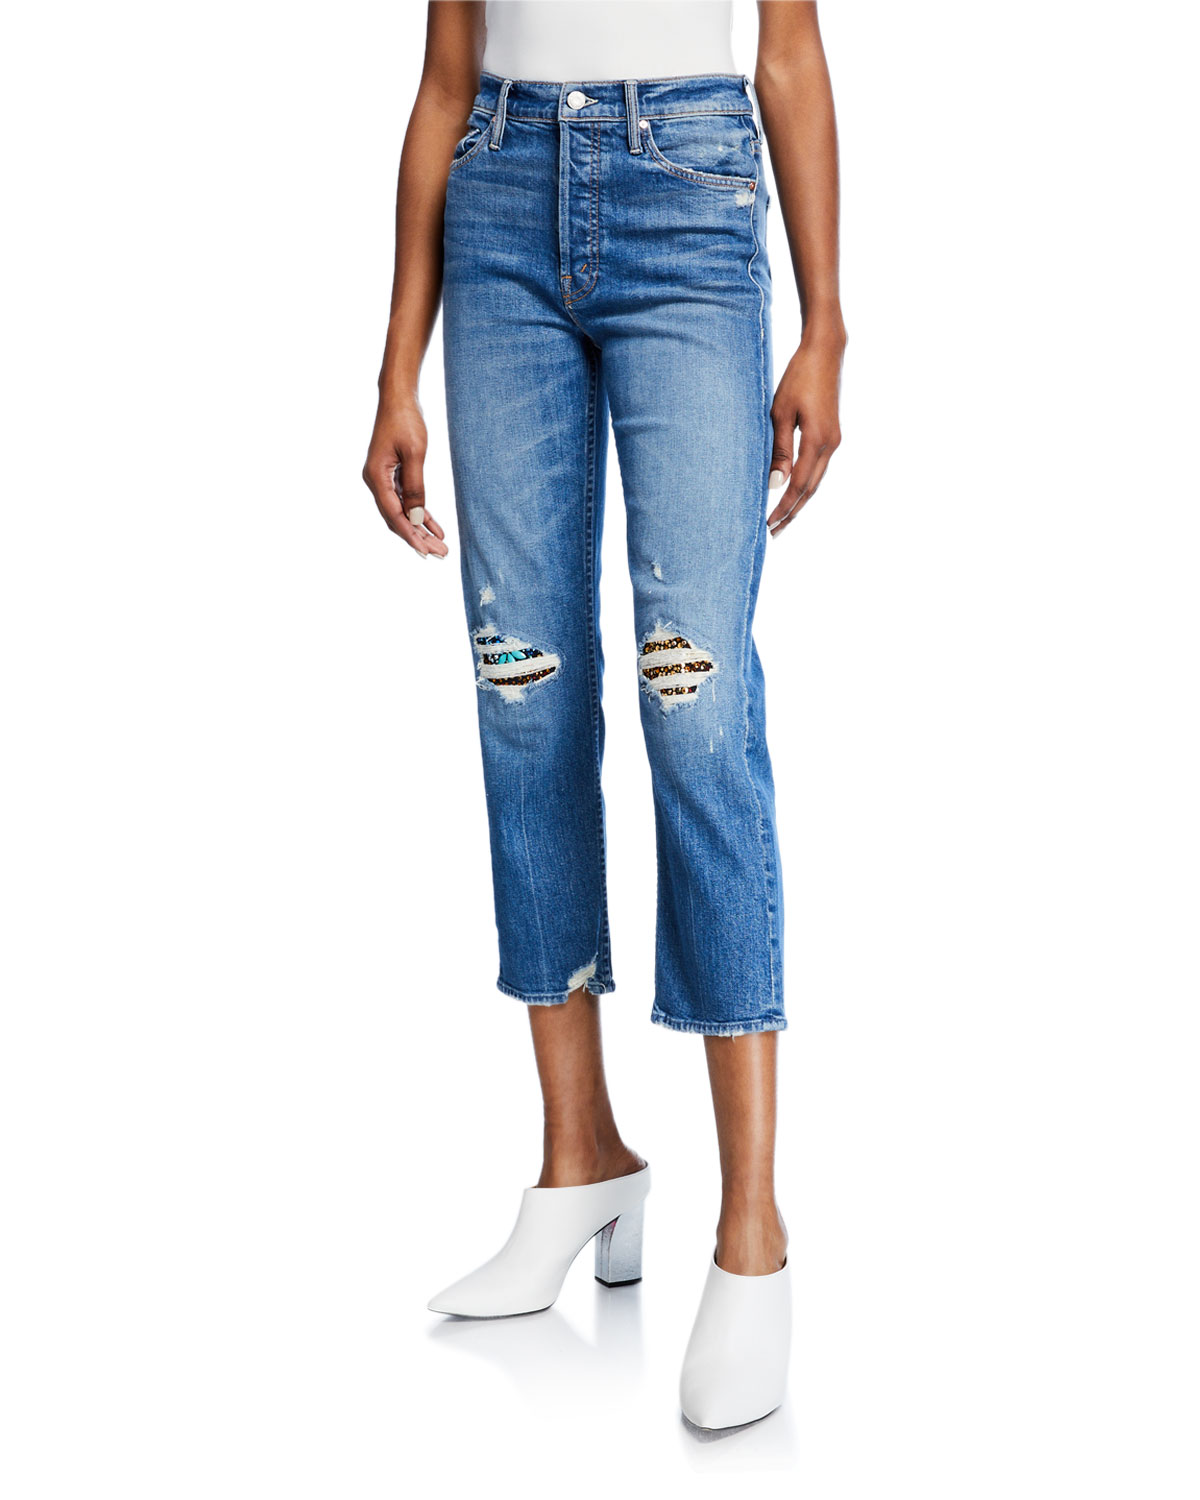 Tomcat High-Rise Jewelled Ripped Ankle Jeans in Pray 4 Hidden Gem